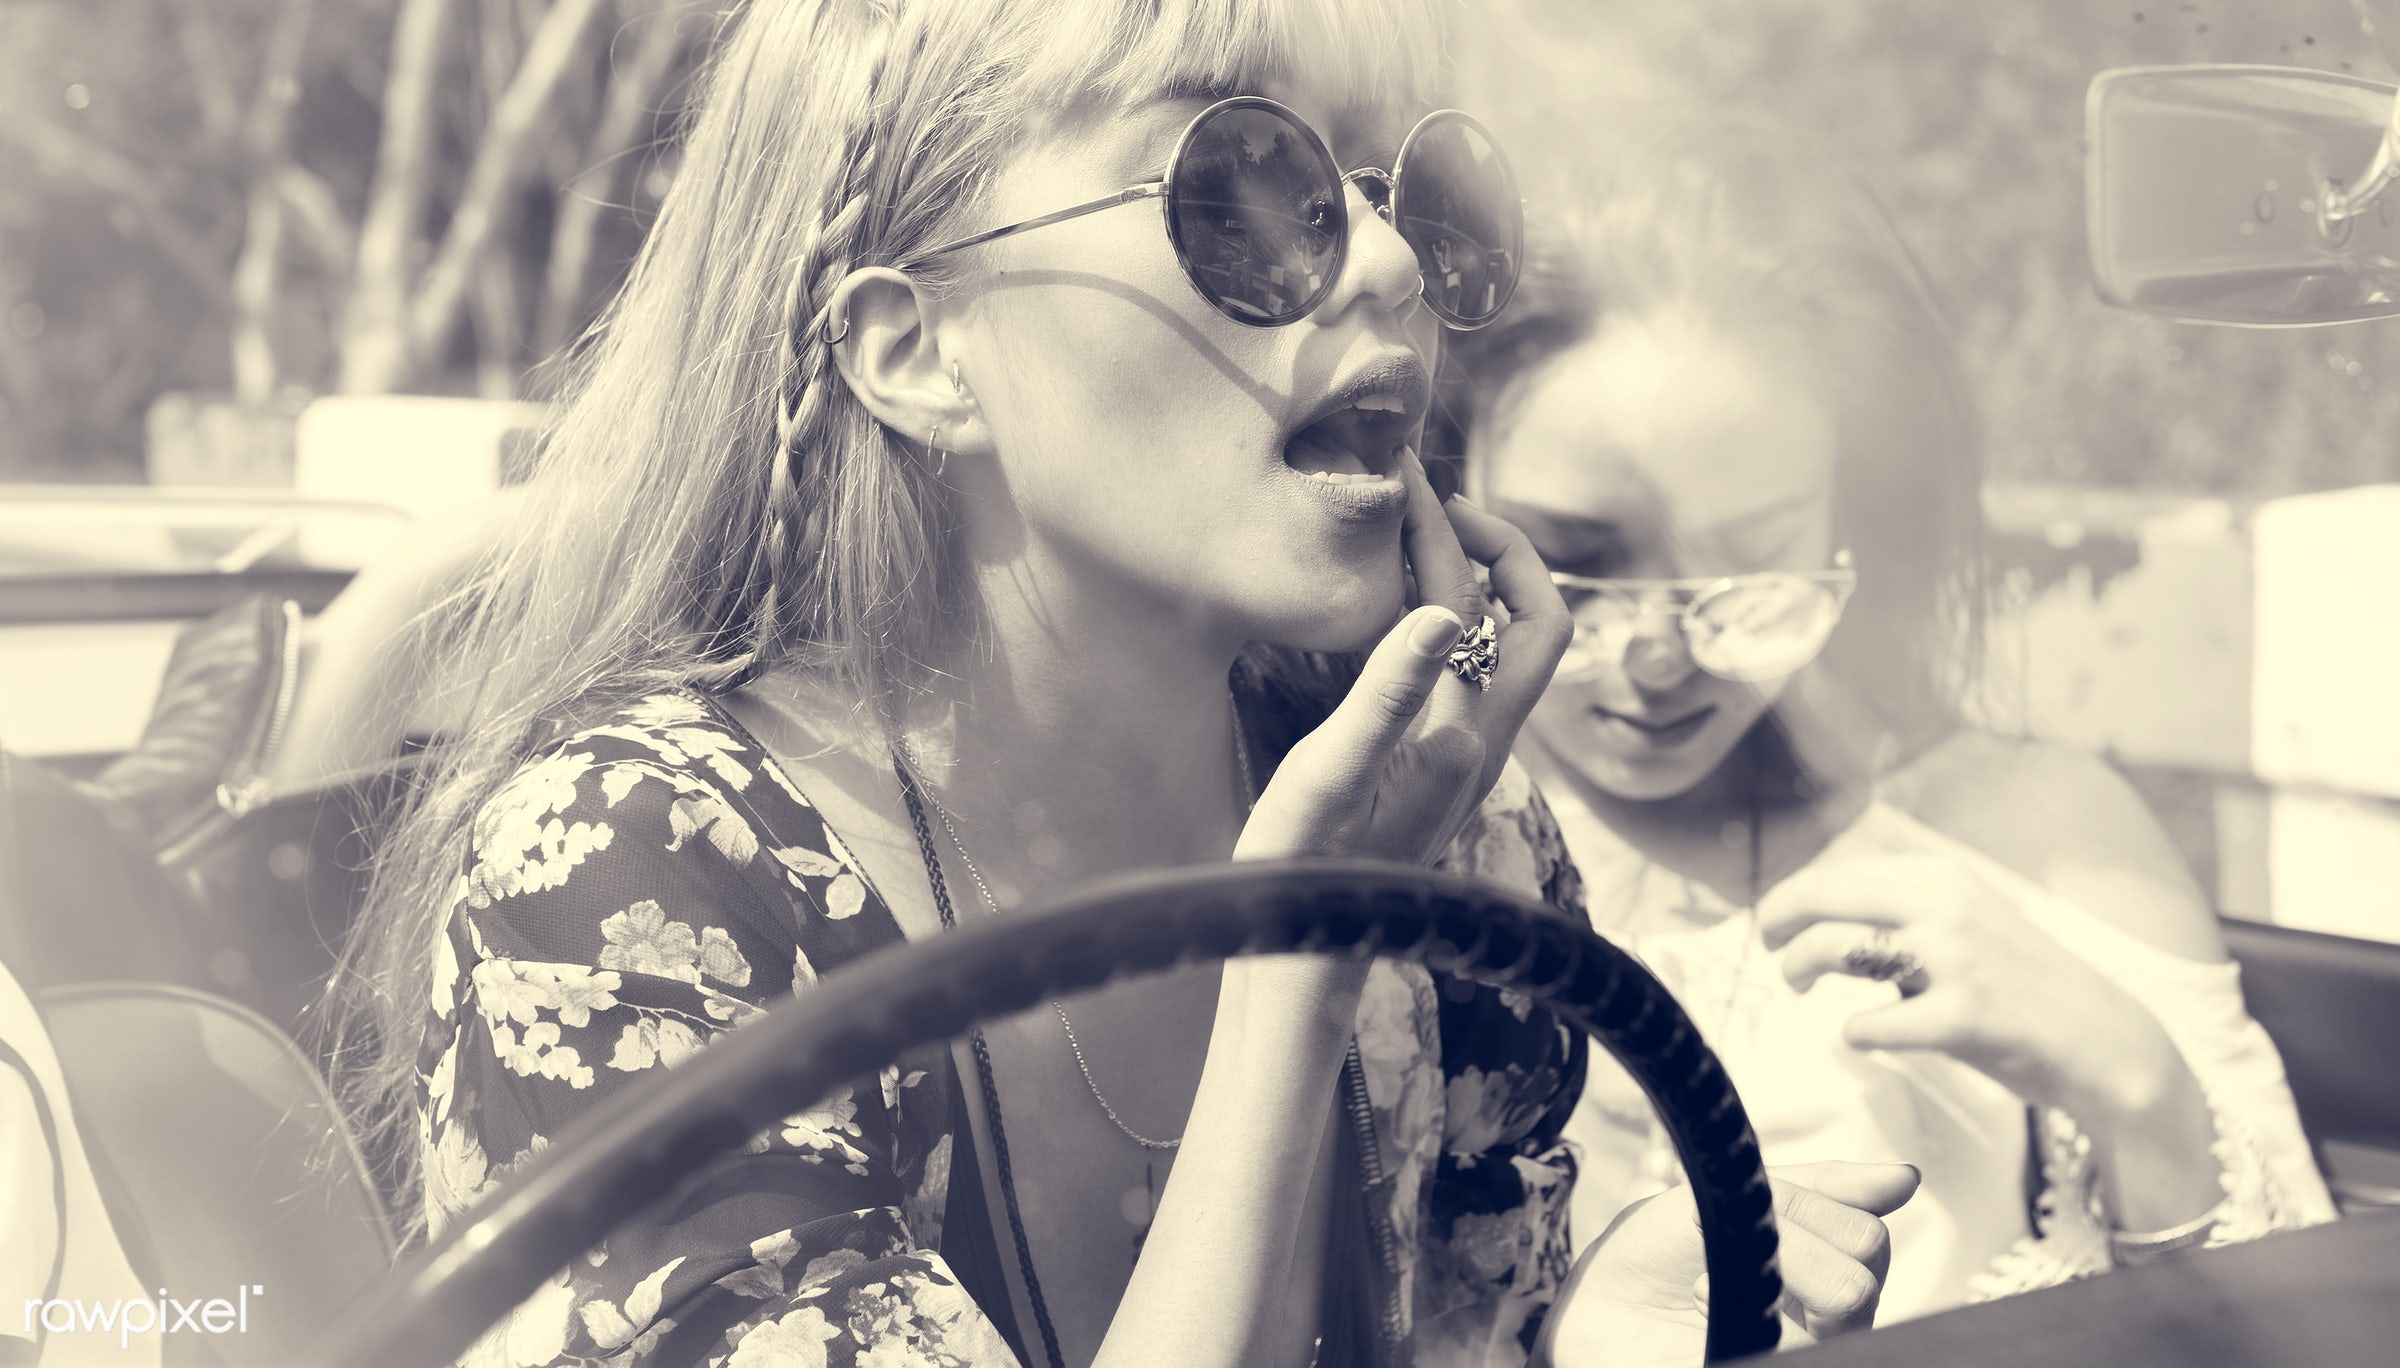 adult, adventure, attractive, beauty, car, down, female, front seat, gypsy, hippy, hipster, journey, joyful, leisure, life,...